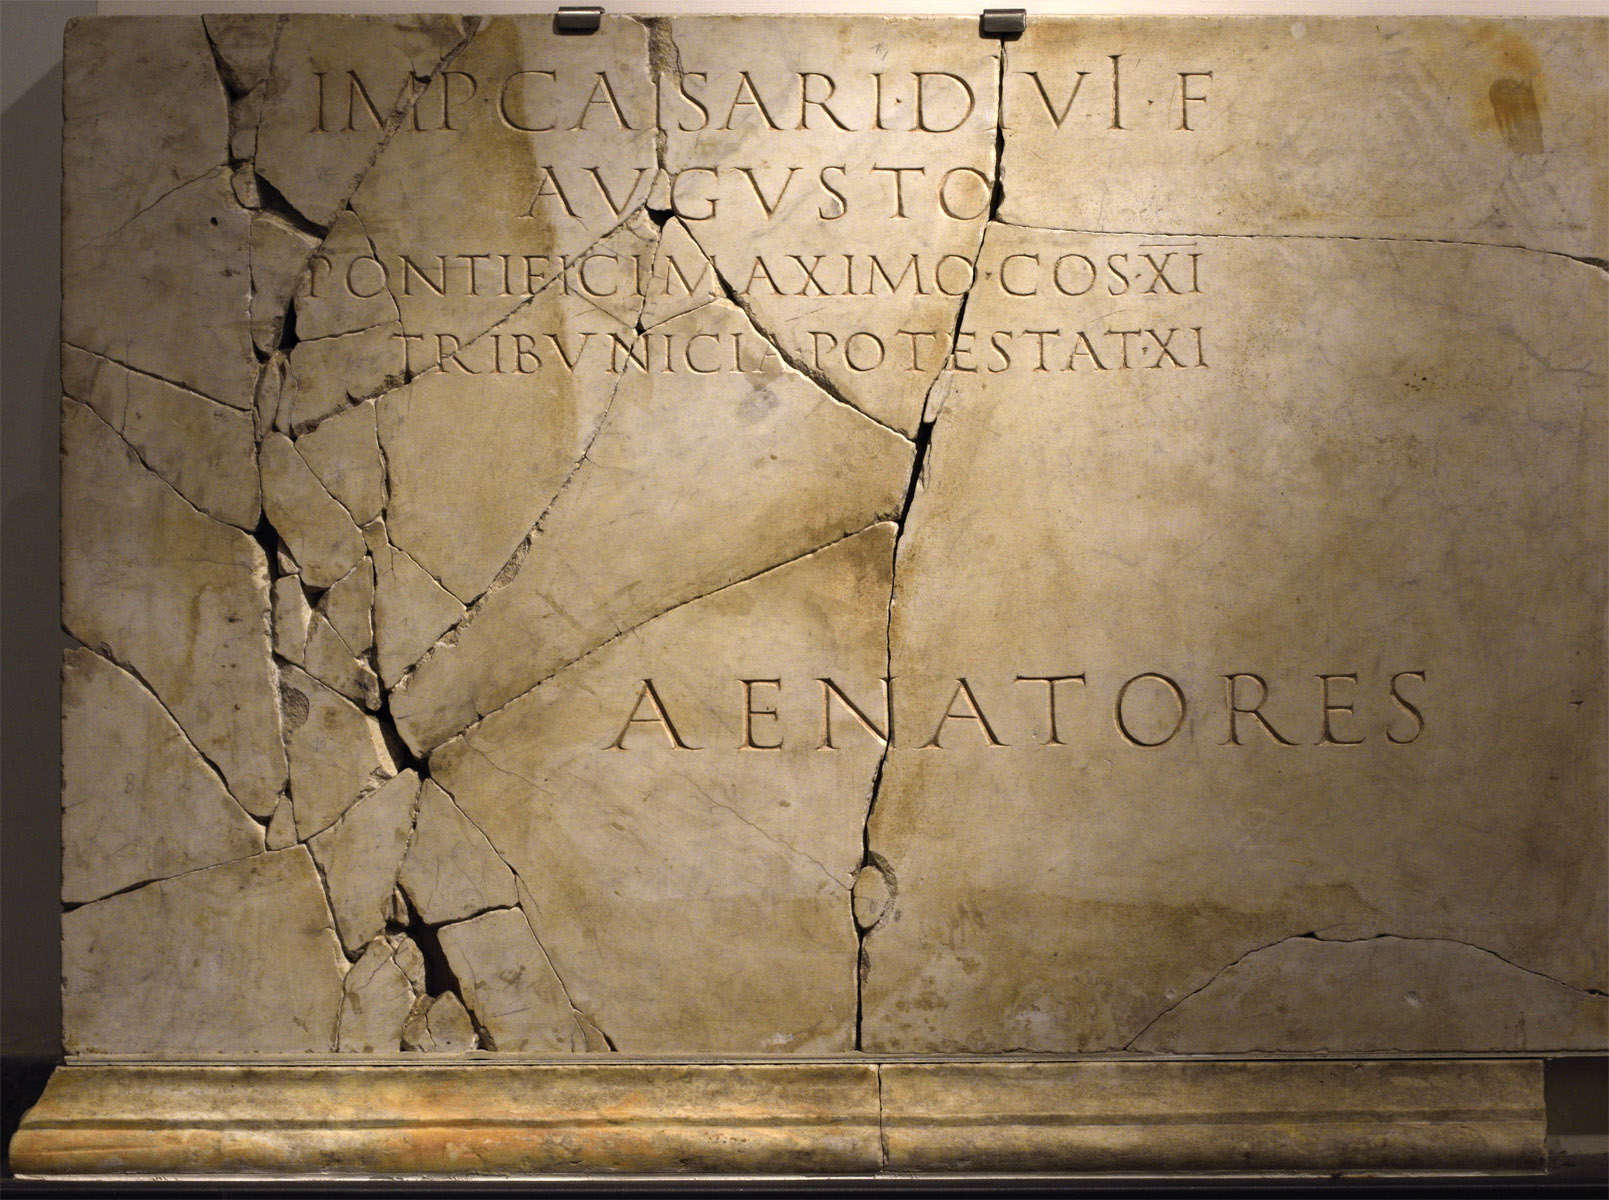 Inscription from the Curiae Veteres in honour of emperor Augustus. CIL. VI. 40307 = AE. 1996. 246. Luna marble. 55—56 CE.  Hall 5, Inv. No. 574363. Rome, Roman National Museum, Baths of Diocletian